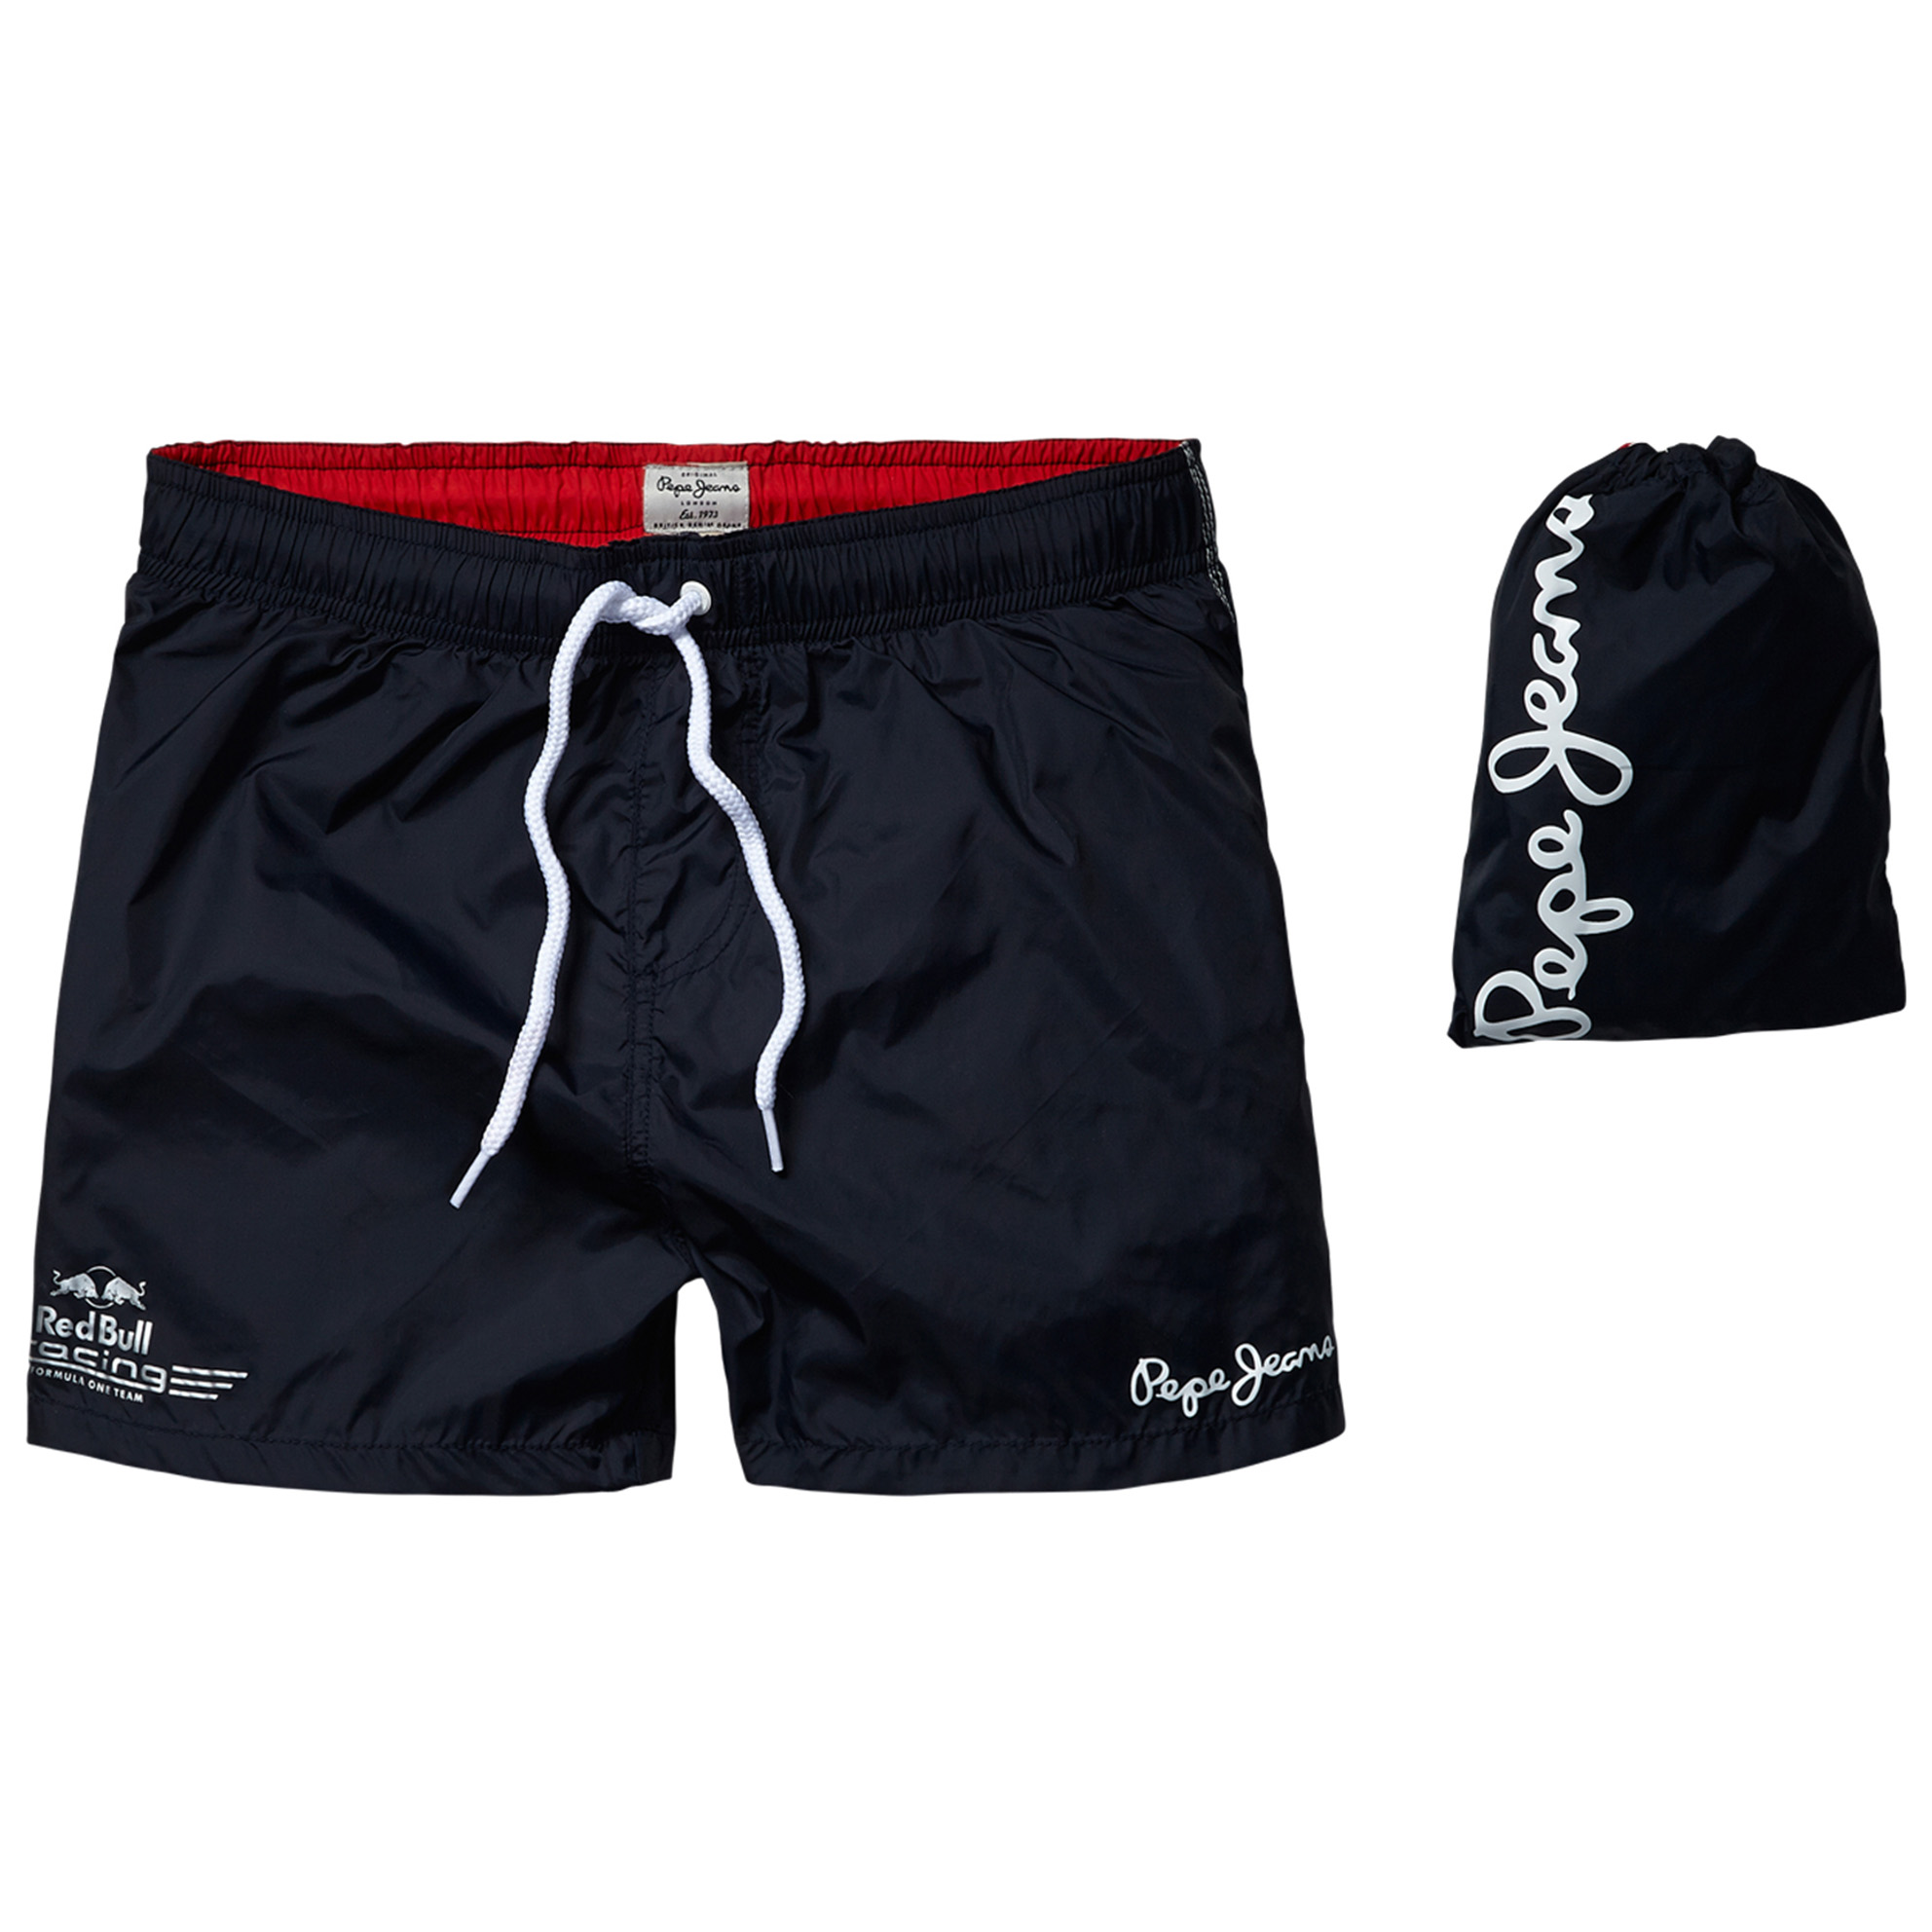 Infiniti Red Bull Racing by Pepe Jeans Sump Swim Shorts